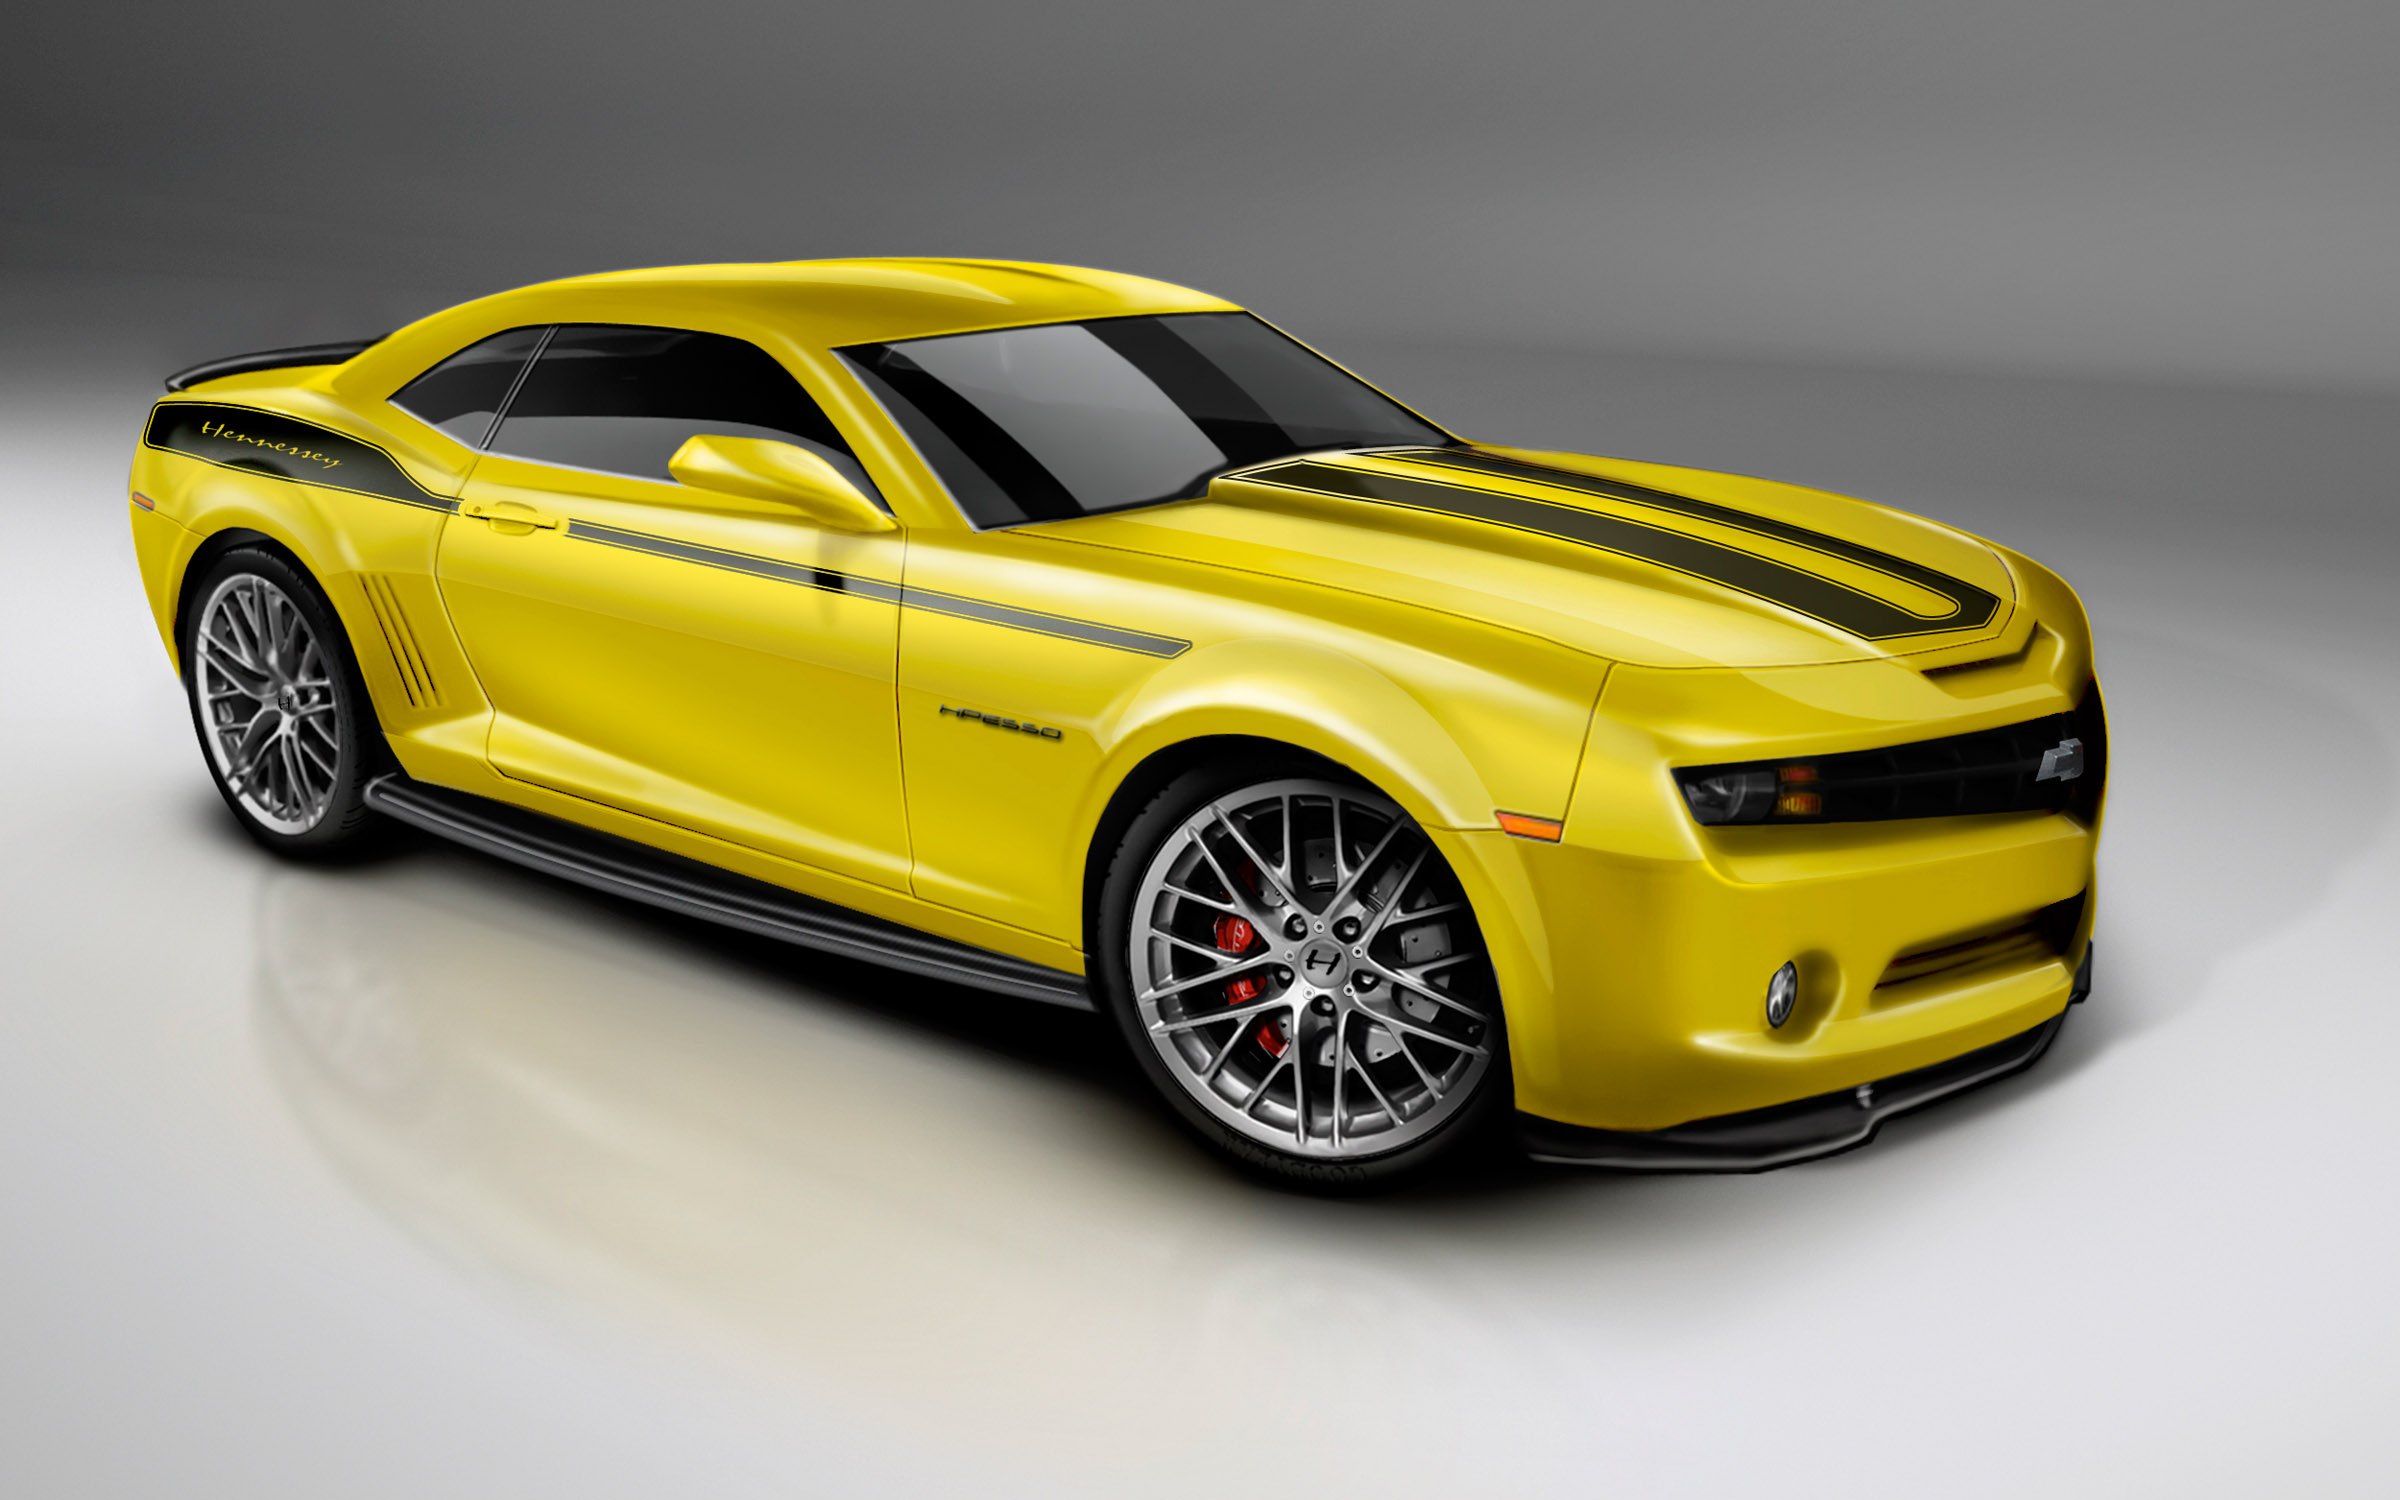 15 Camero Car Vectors Images